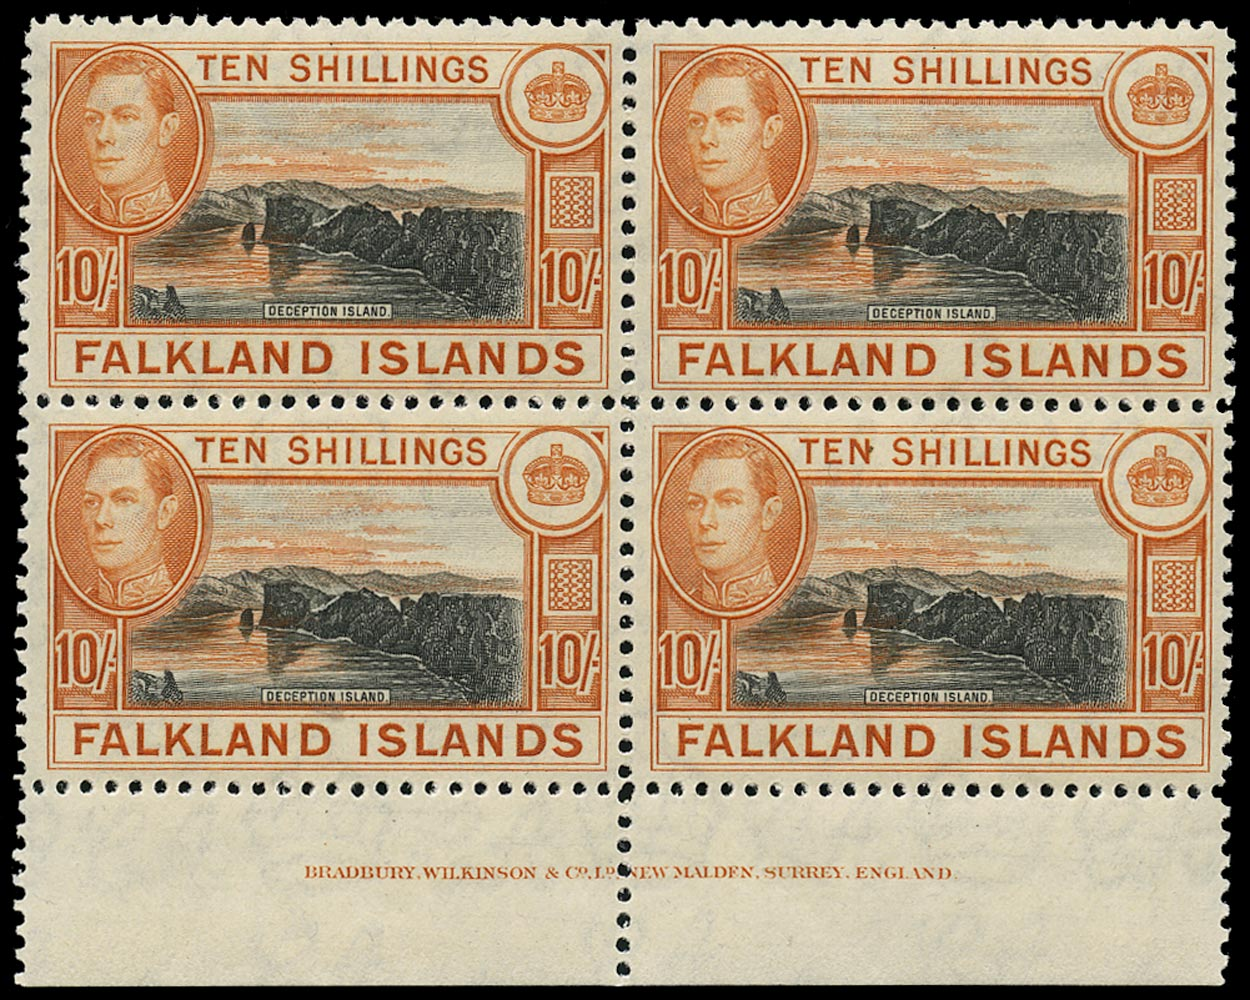 FALKLAND ISLANDS 1938  SG162b Mint unmounted 10s black and red-orange on greyish paper imprint block